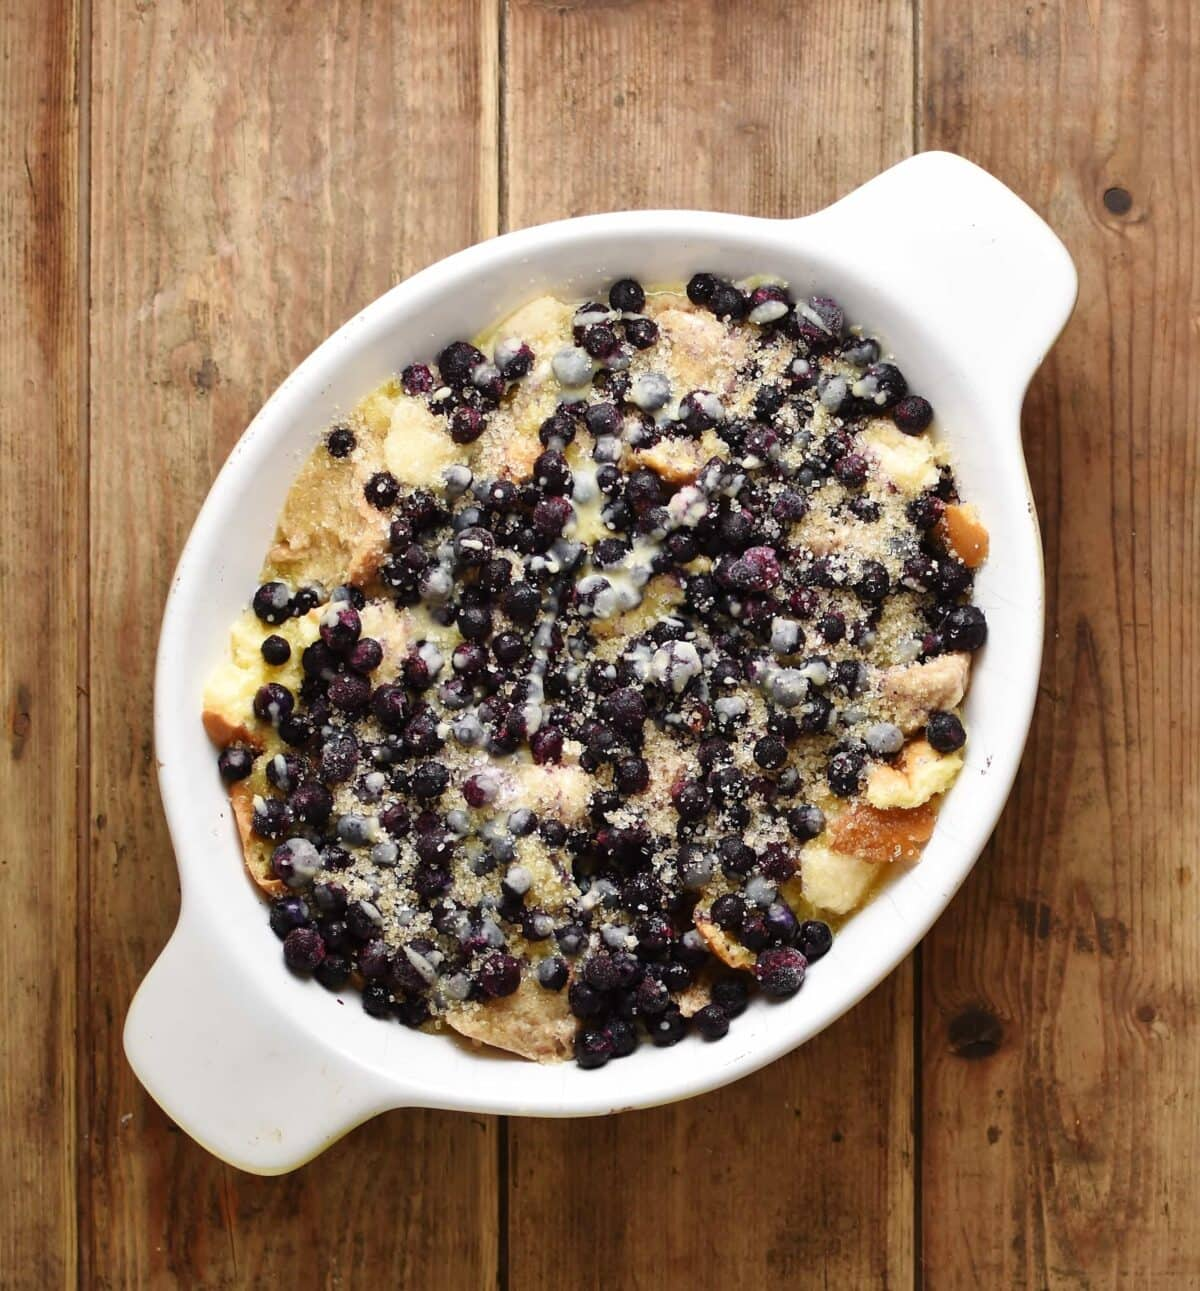 Blueberry french toast casserole in white oval dish.